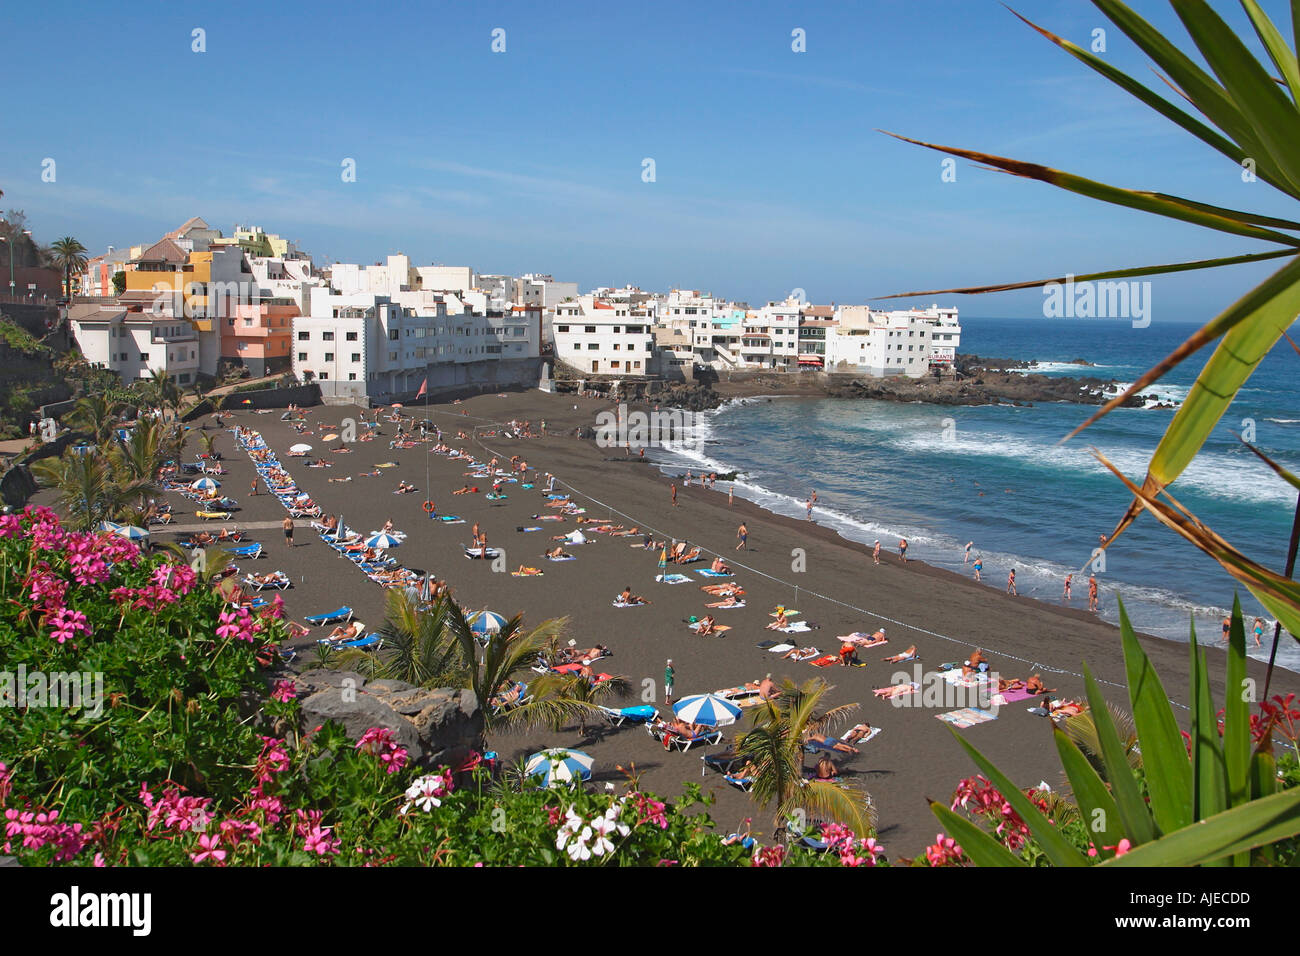 Playa jardin beach puerto de la cruz tenerife canary islands stock photo royalty free image - Playa puerto de la cruz tenerife ...